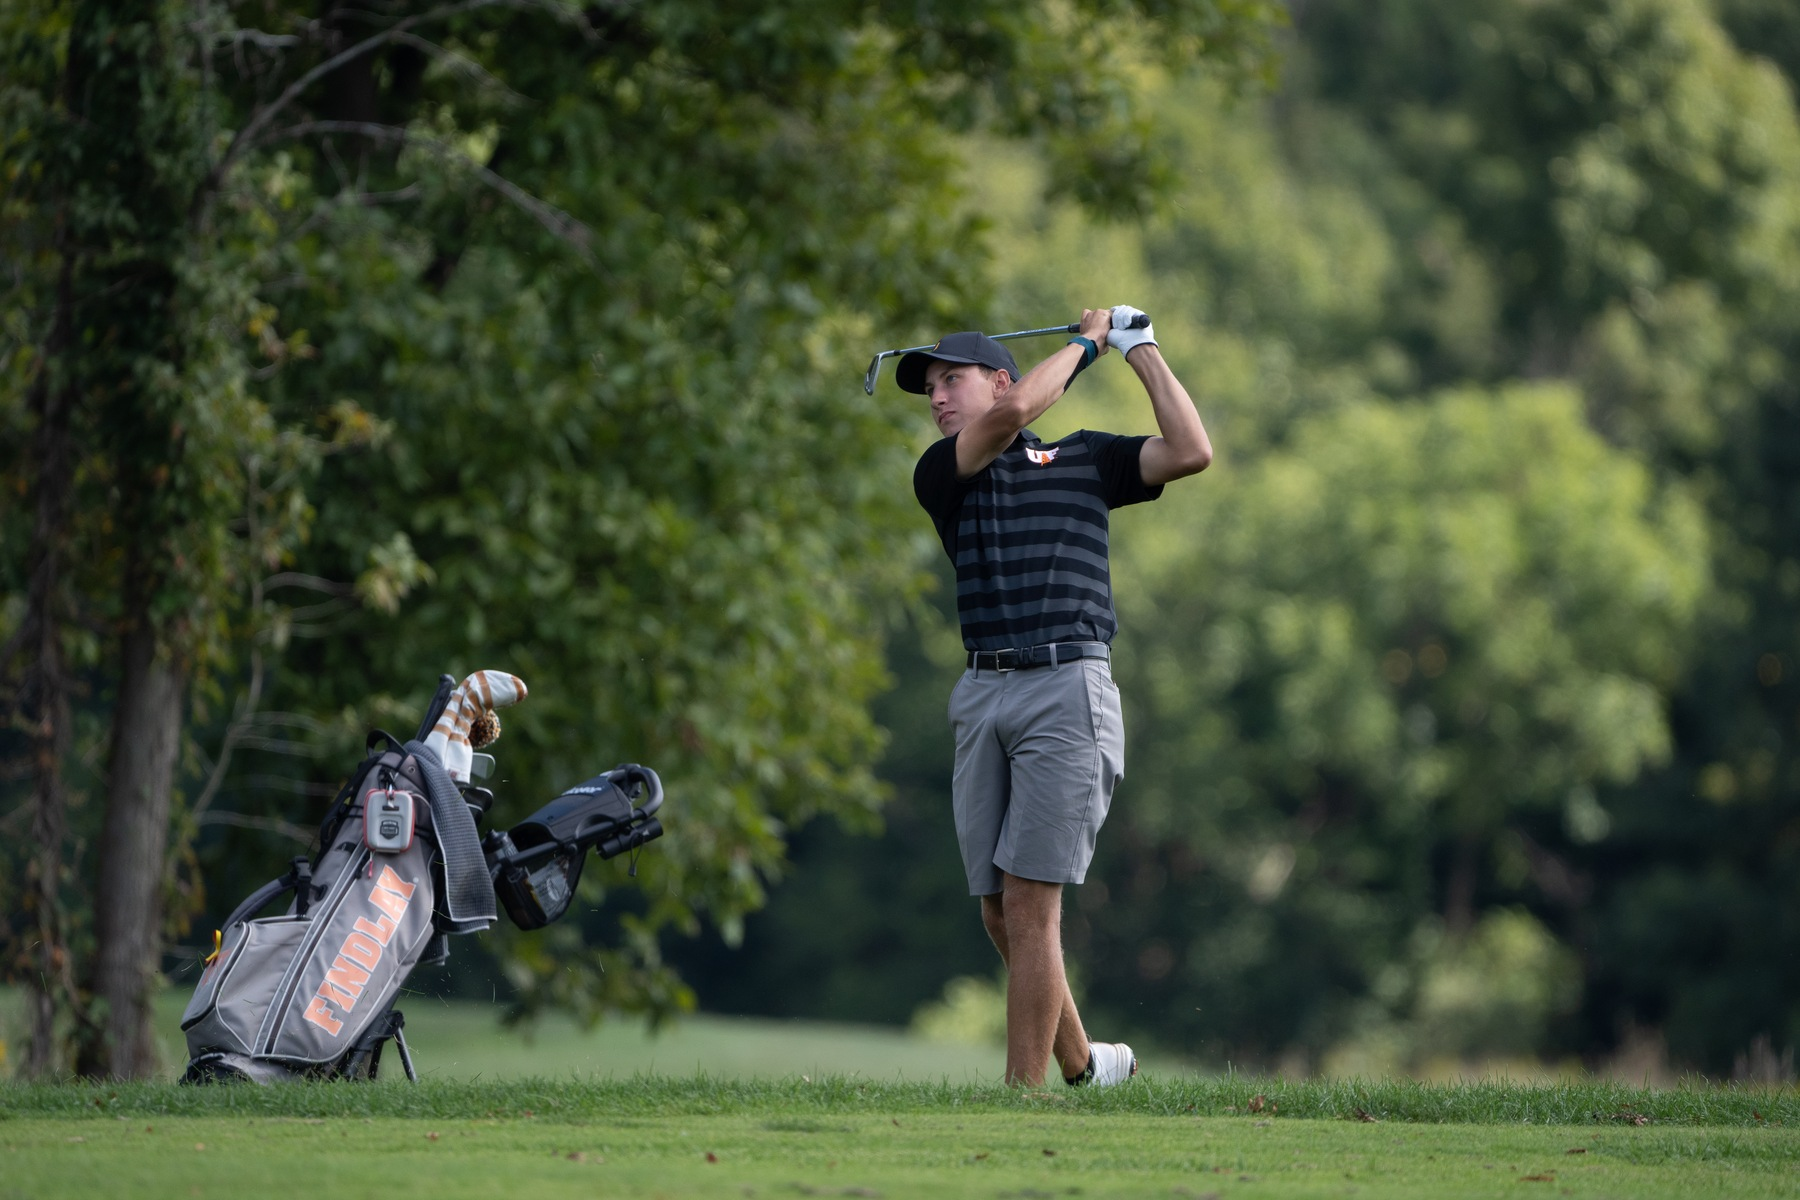 Oilers Look to Capture Another Tournament Win | Hold 4 Stroke Lead Heading to Final Round